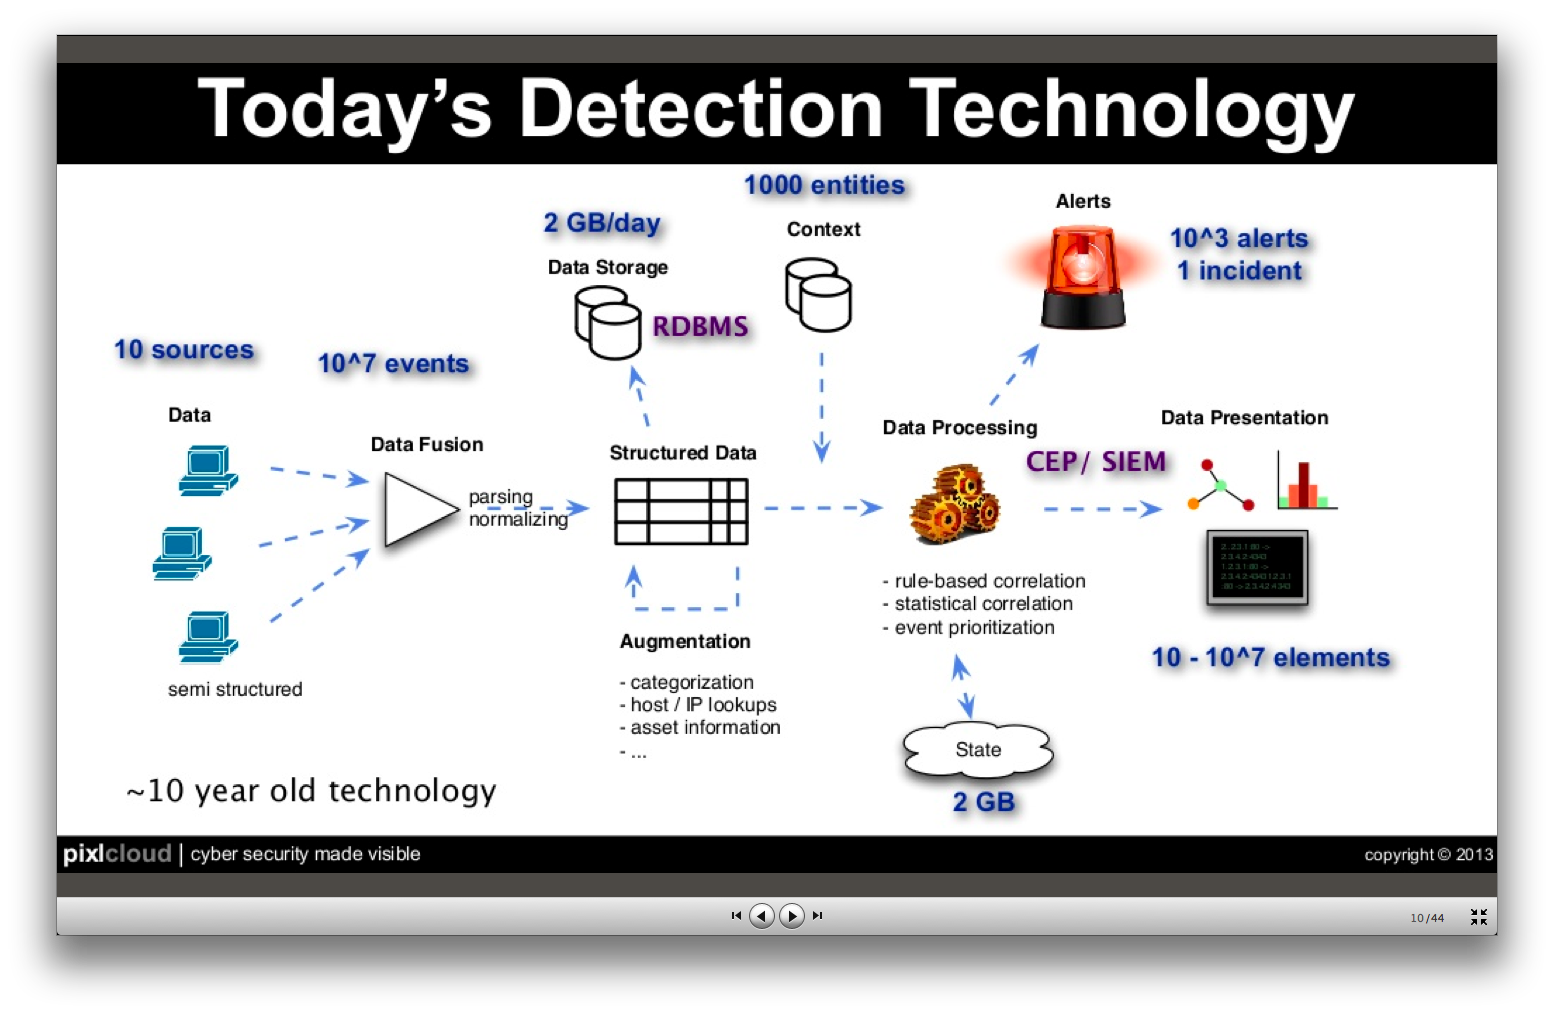 marty_detectiontechnology___slideshare-zrlram